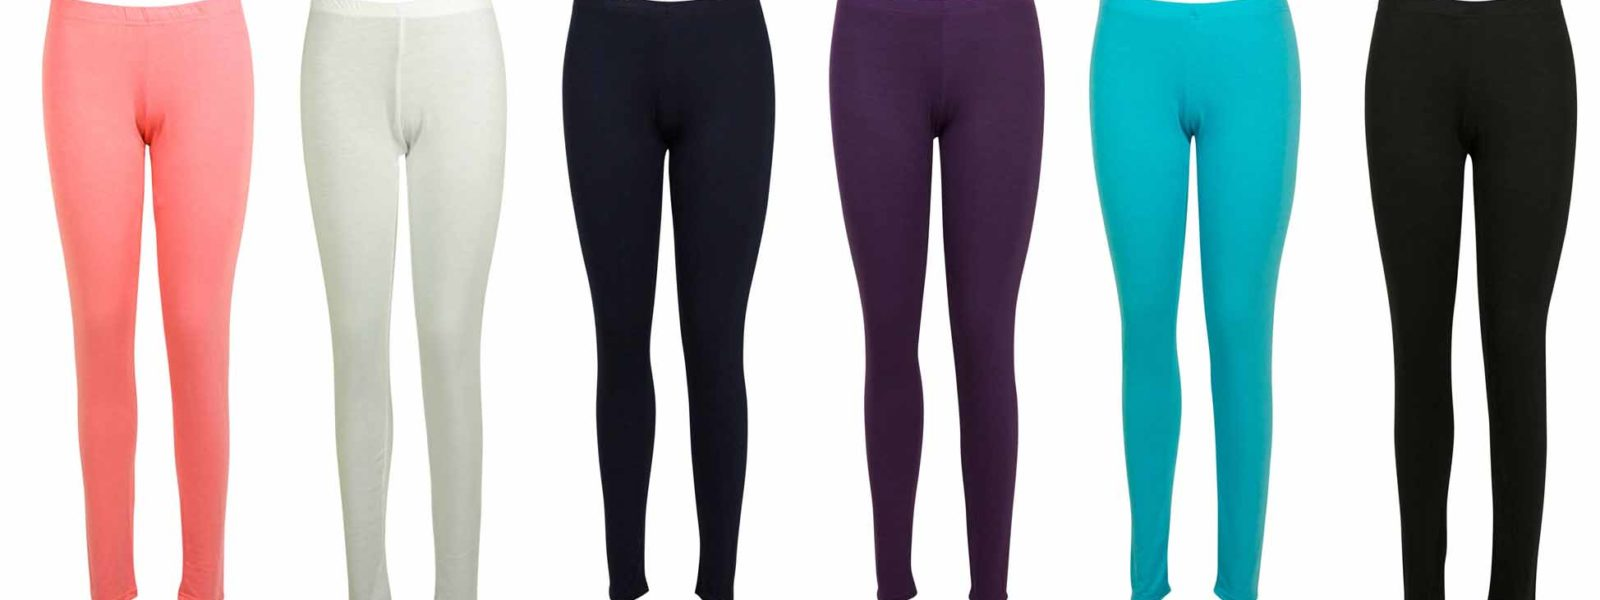 Why your leggings are offensive to God and neighbor by Martina Casey